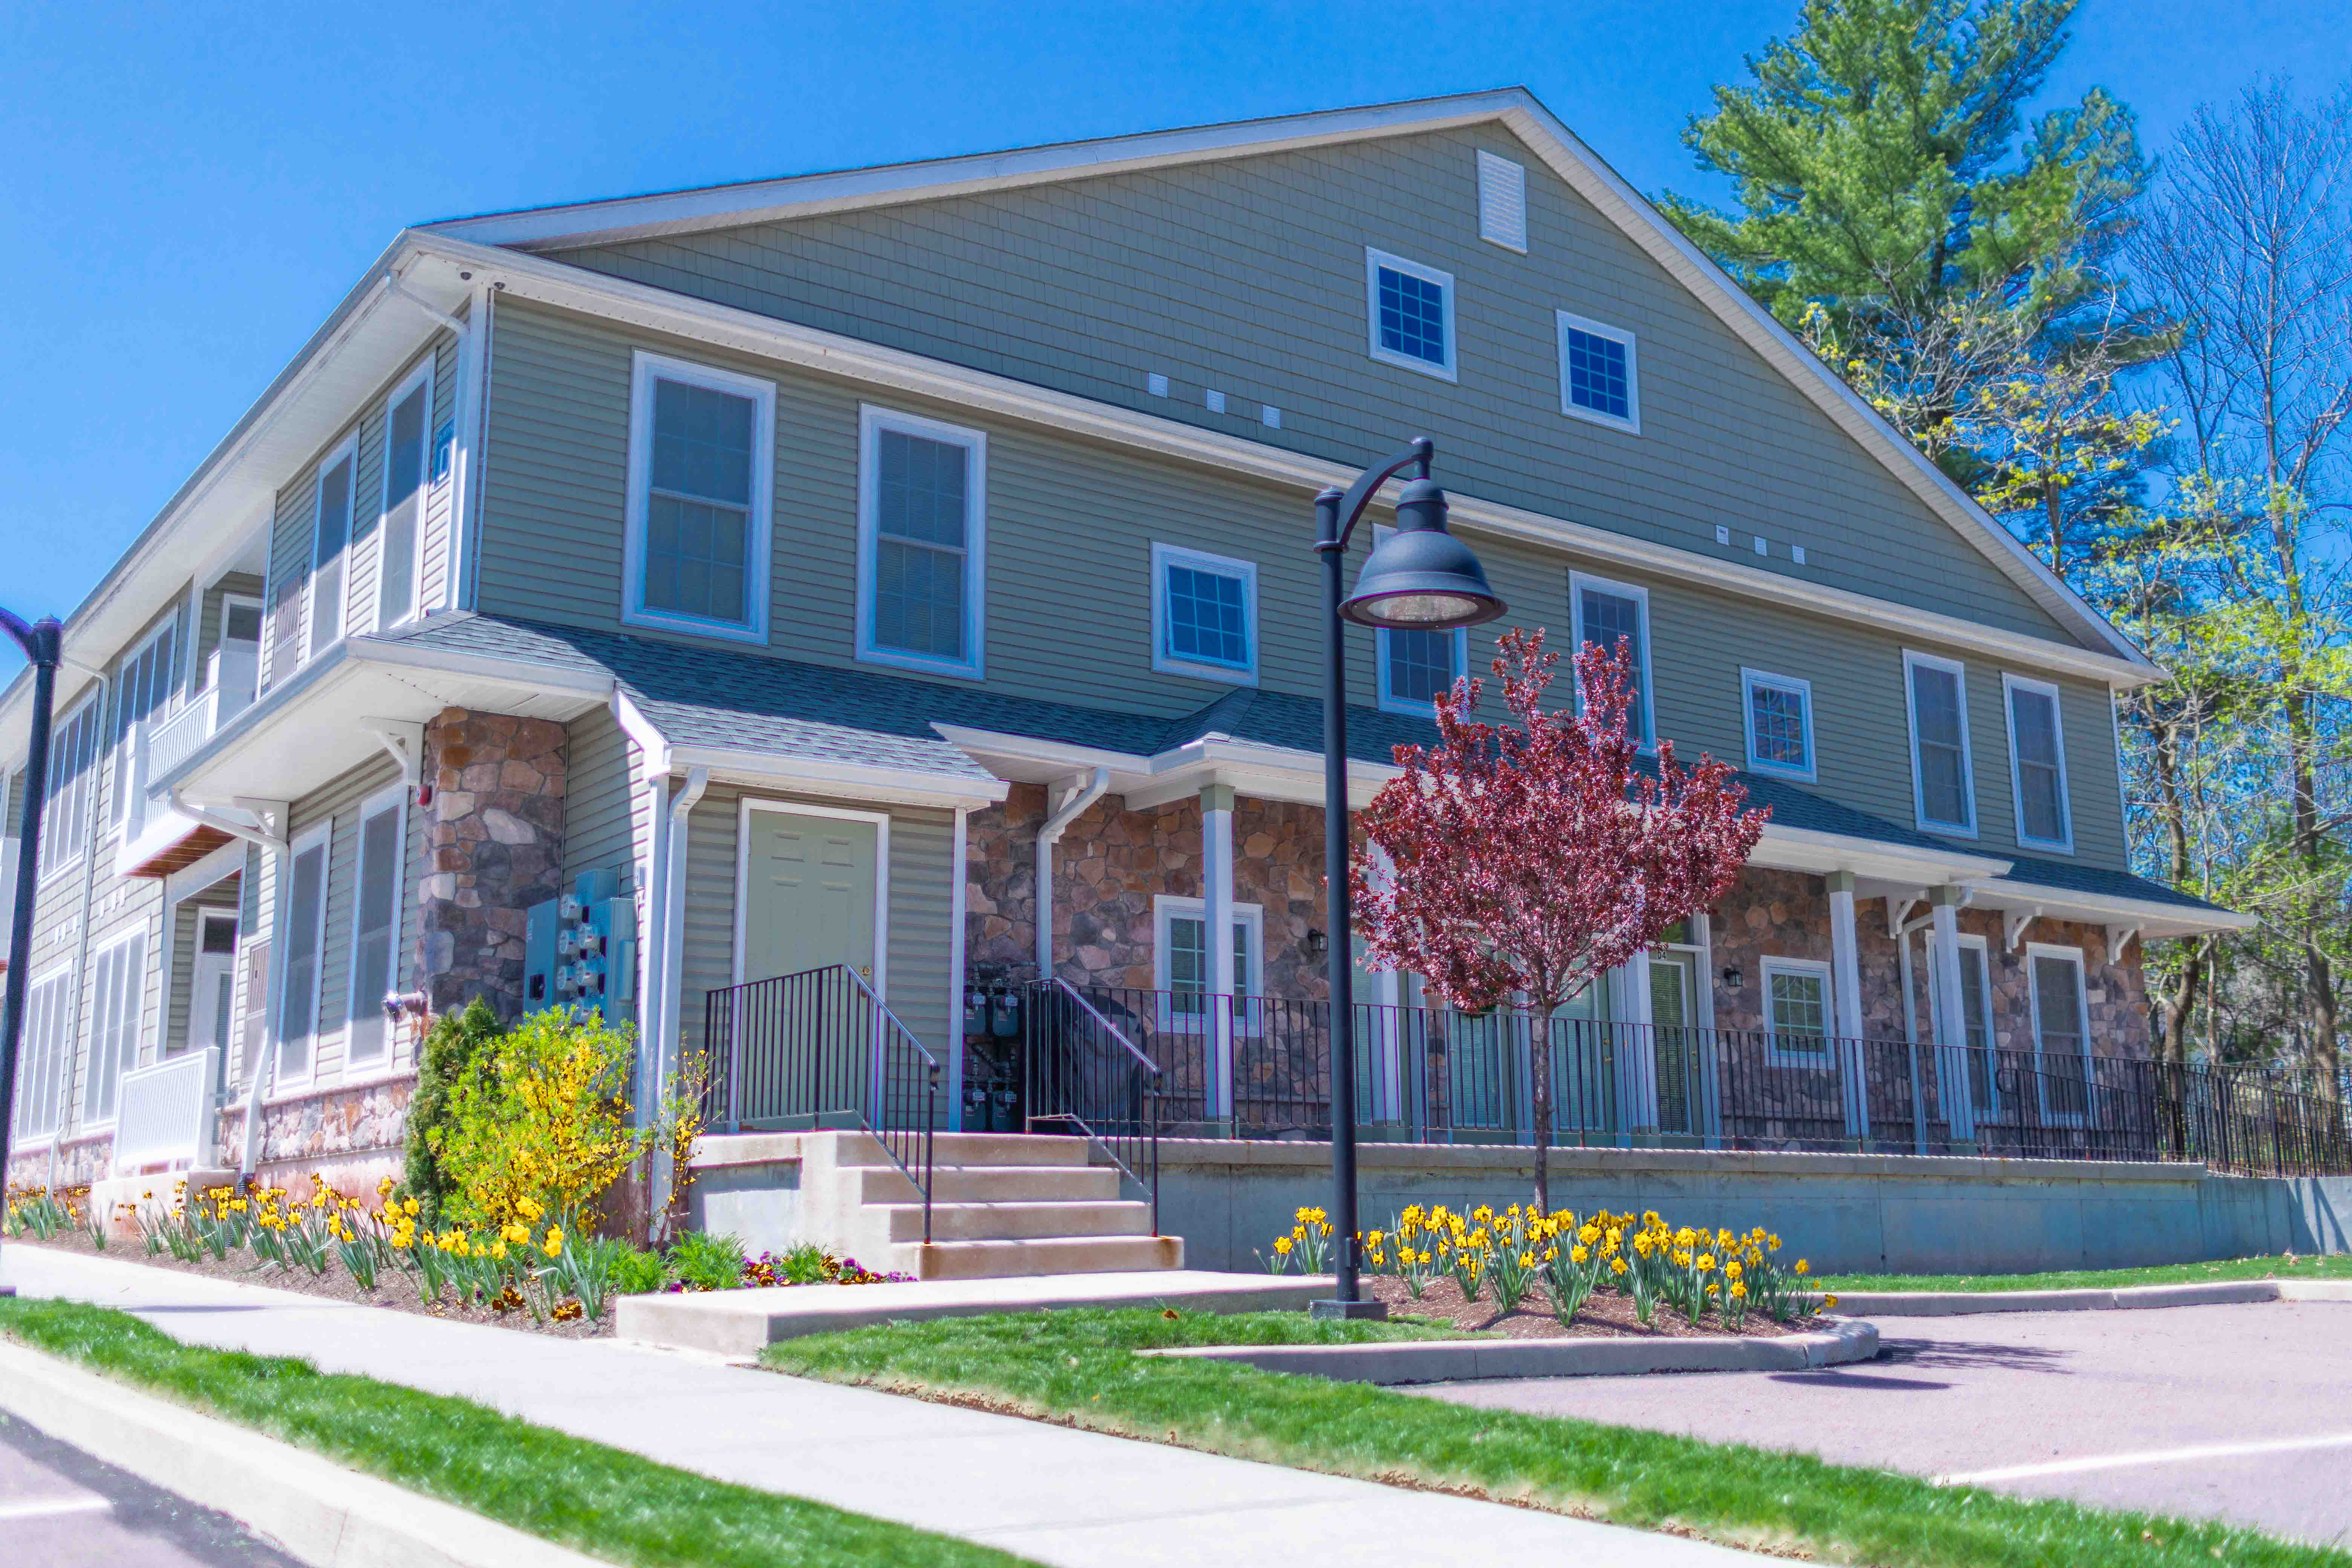 Springhouse Apartments Trappe Pa